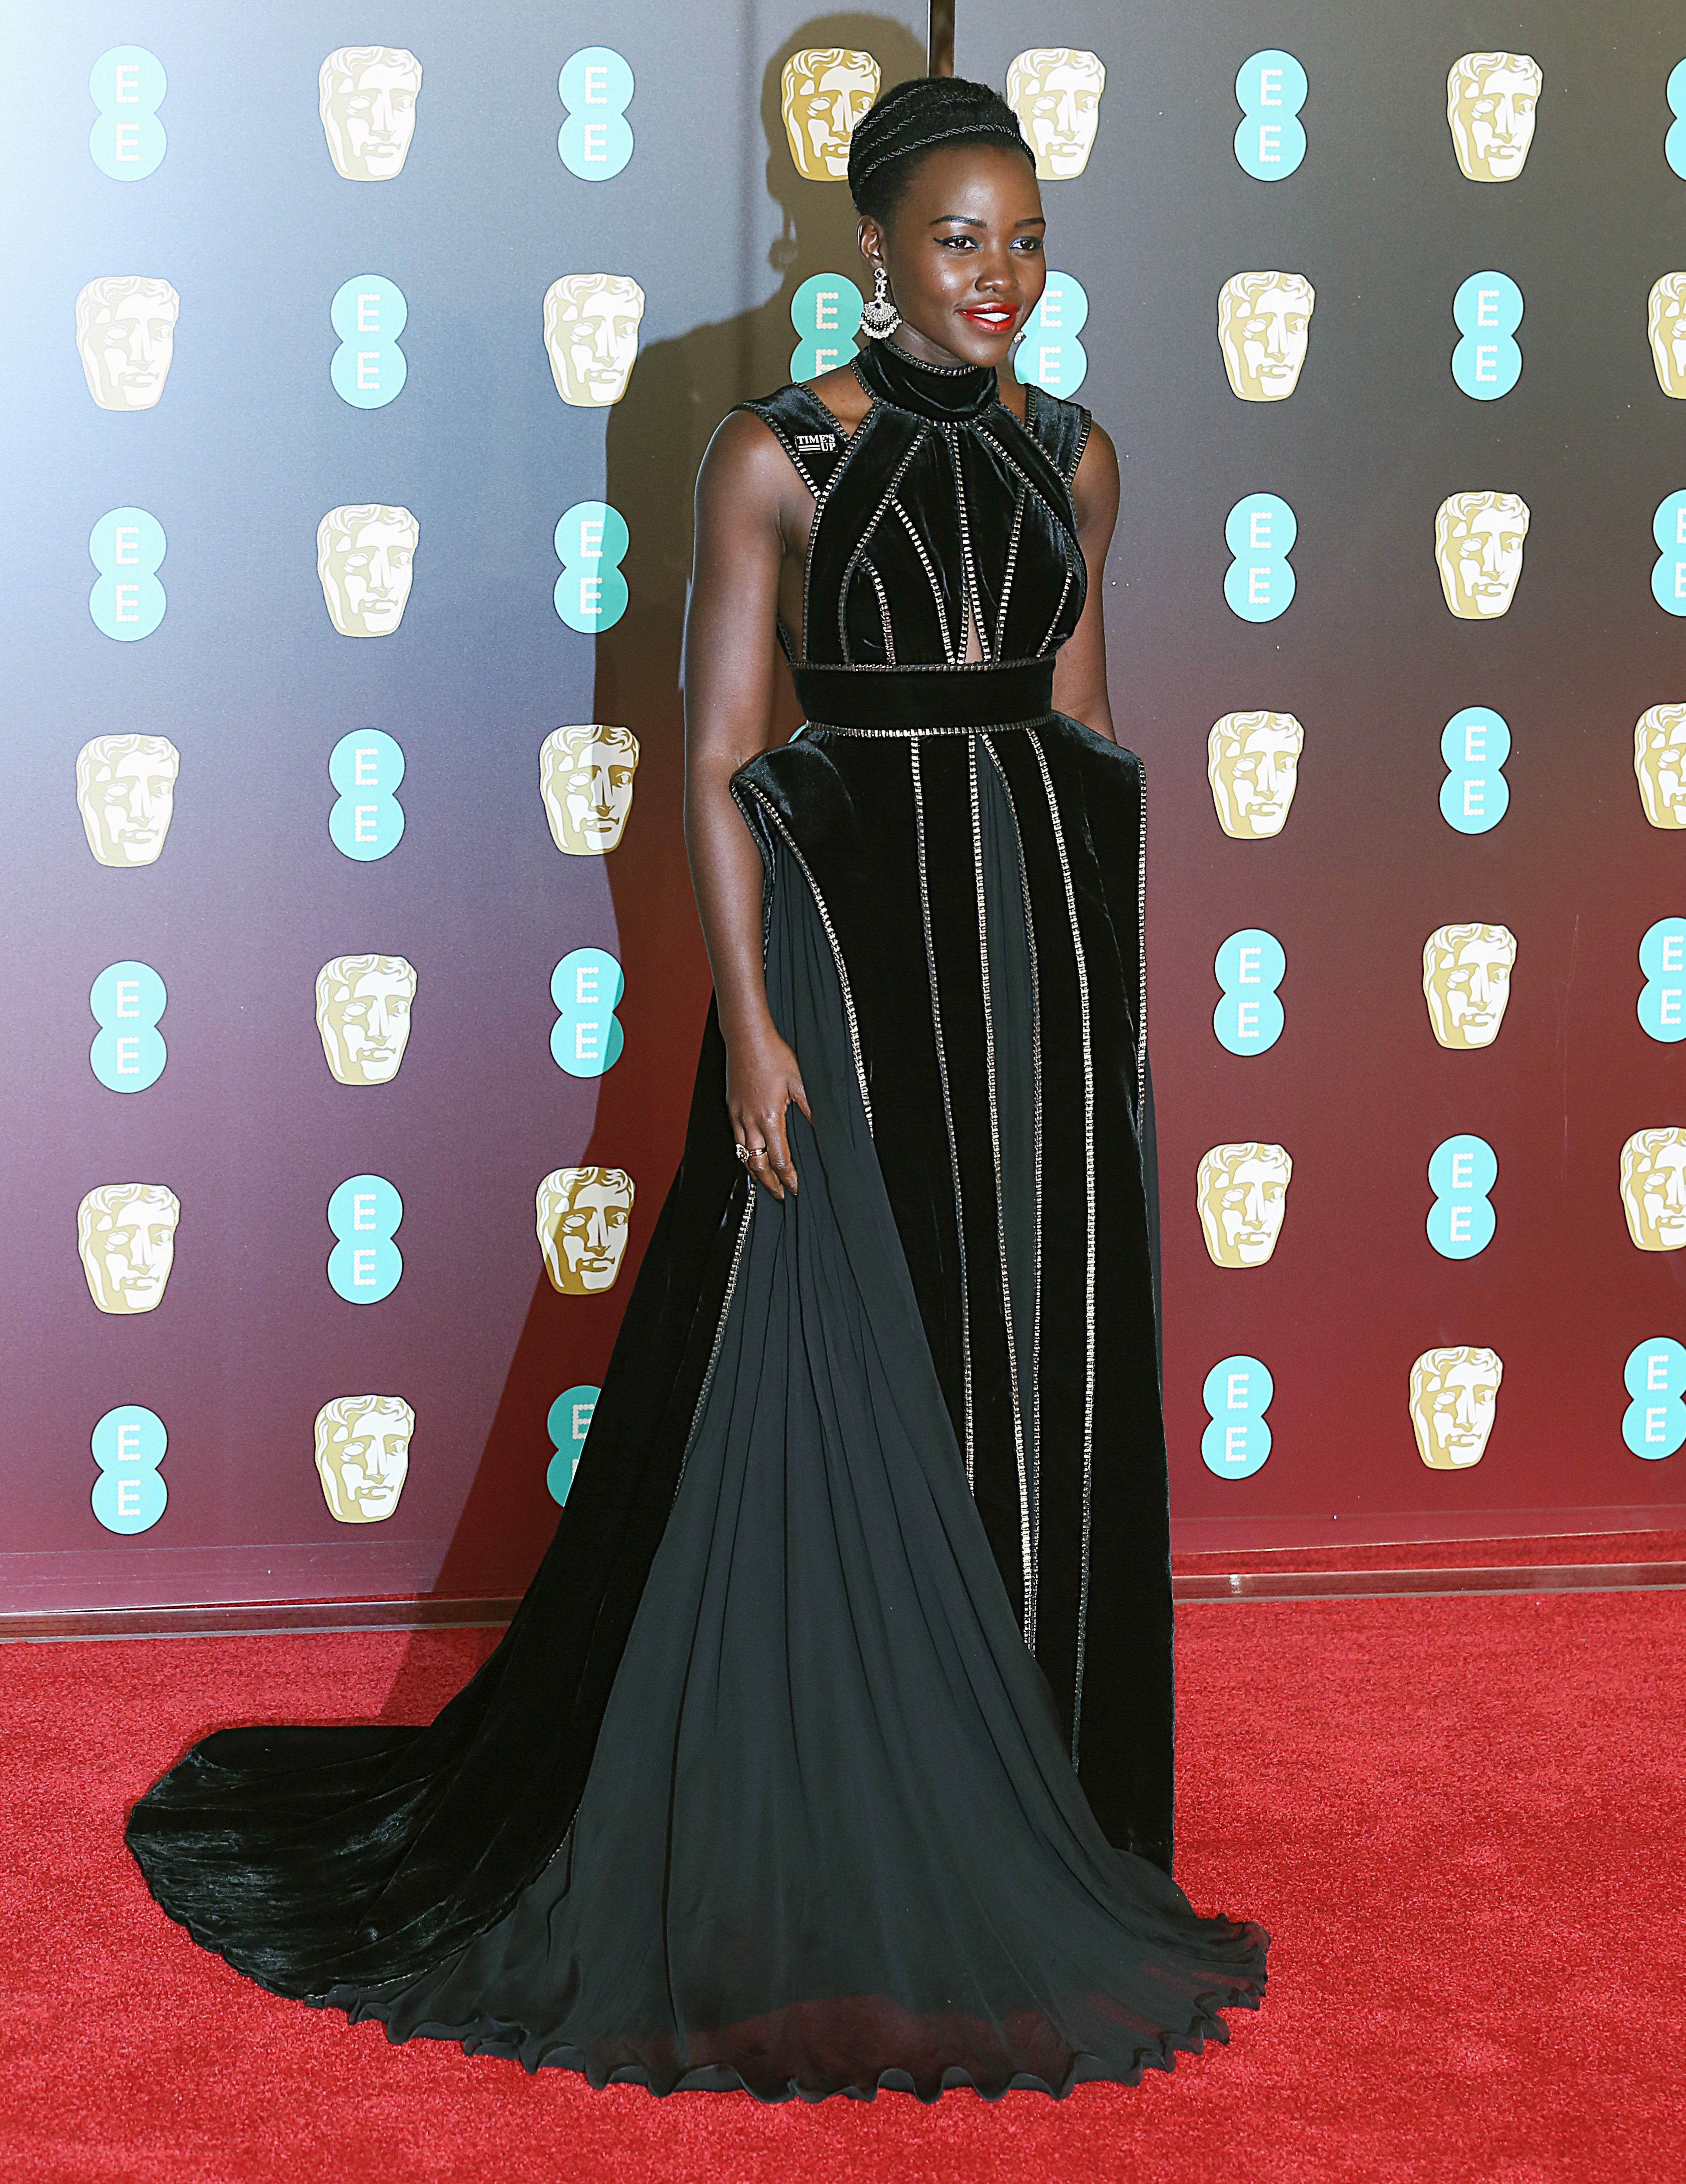 EE British Academy Film Awards 2018 (BAFTAs), Royal Albert Hall, London UK, 18 February 2018, Photo by Brett D. Cove <P> Pictured: Lupita Nyong'o <B>Ref: SPL1661269  190218  </B><BR/> Picture by: Brett D. Cove / Splash News<BR/> </P><P> <B>Splash News and Pictures</B><BR/> Los Angeles:310-821-2666<BR/> New York:212-619-2666<BR/> London:870-934-2666<BR/> <span id=